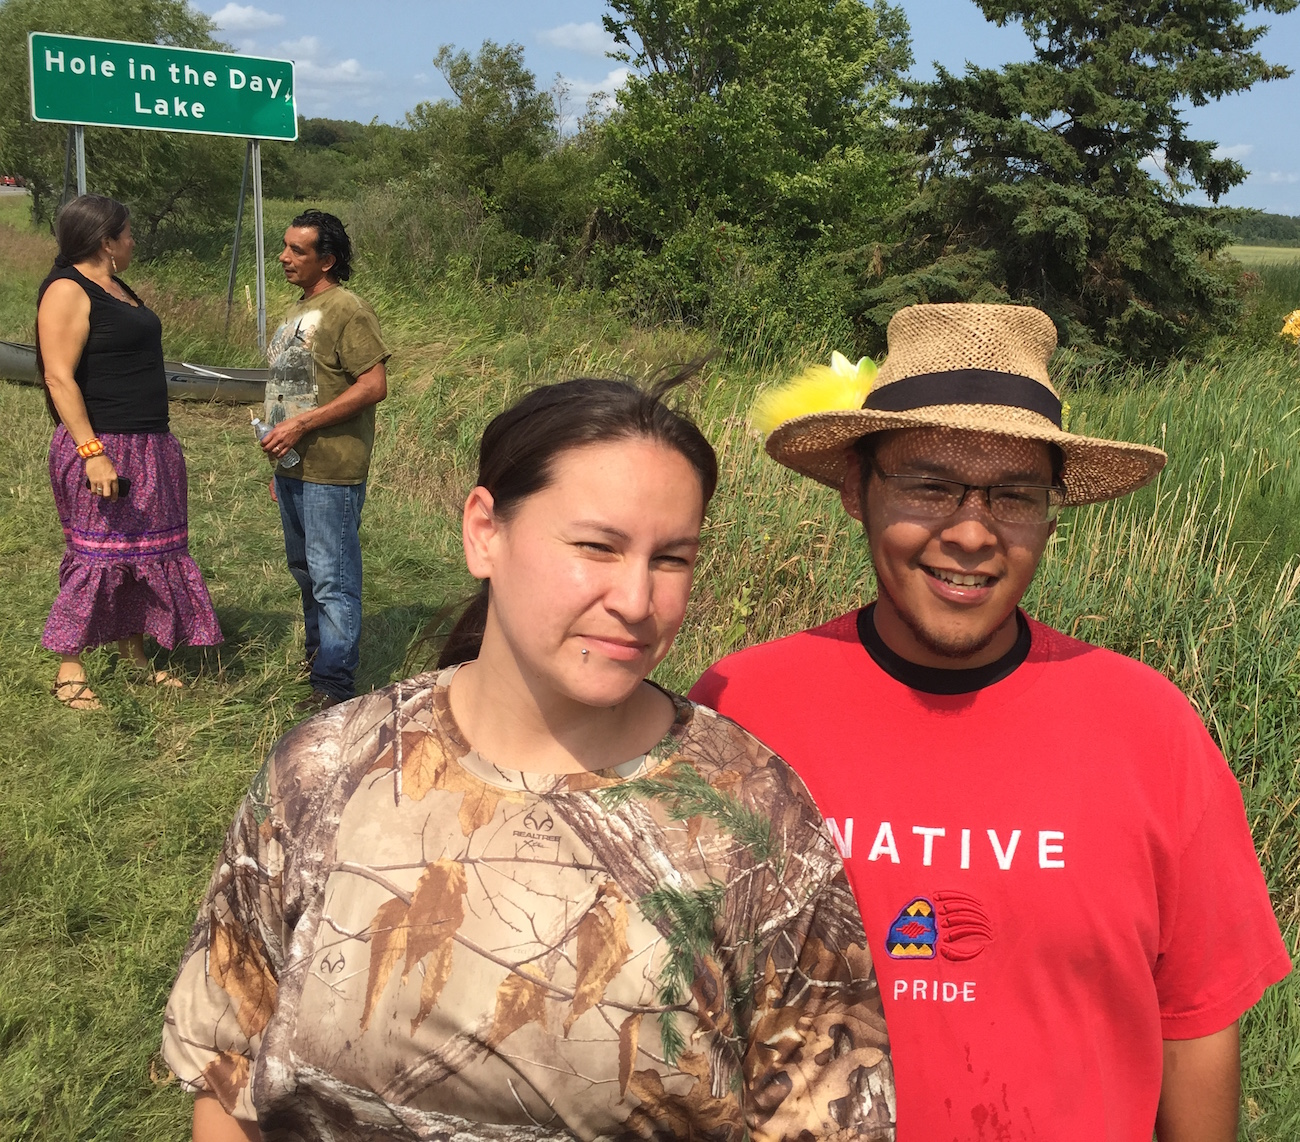 Young tribal members cited for wild rice harvest in Minnesota